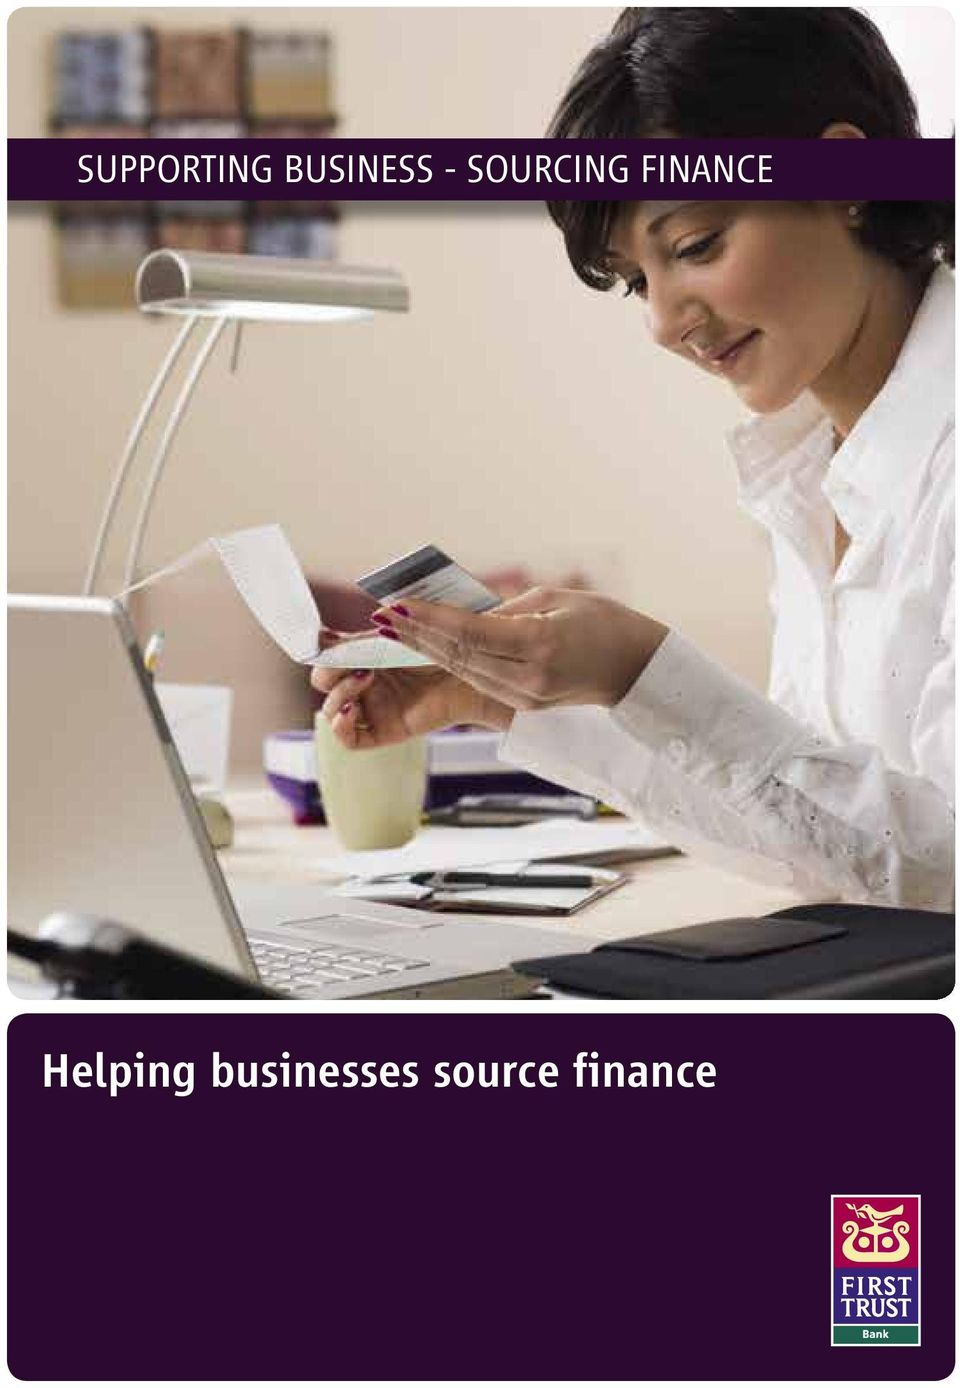 SOURCING FINANCE